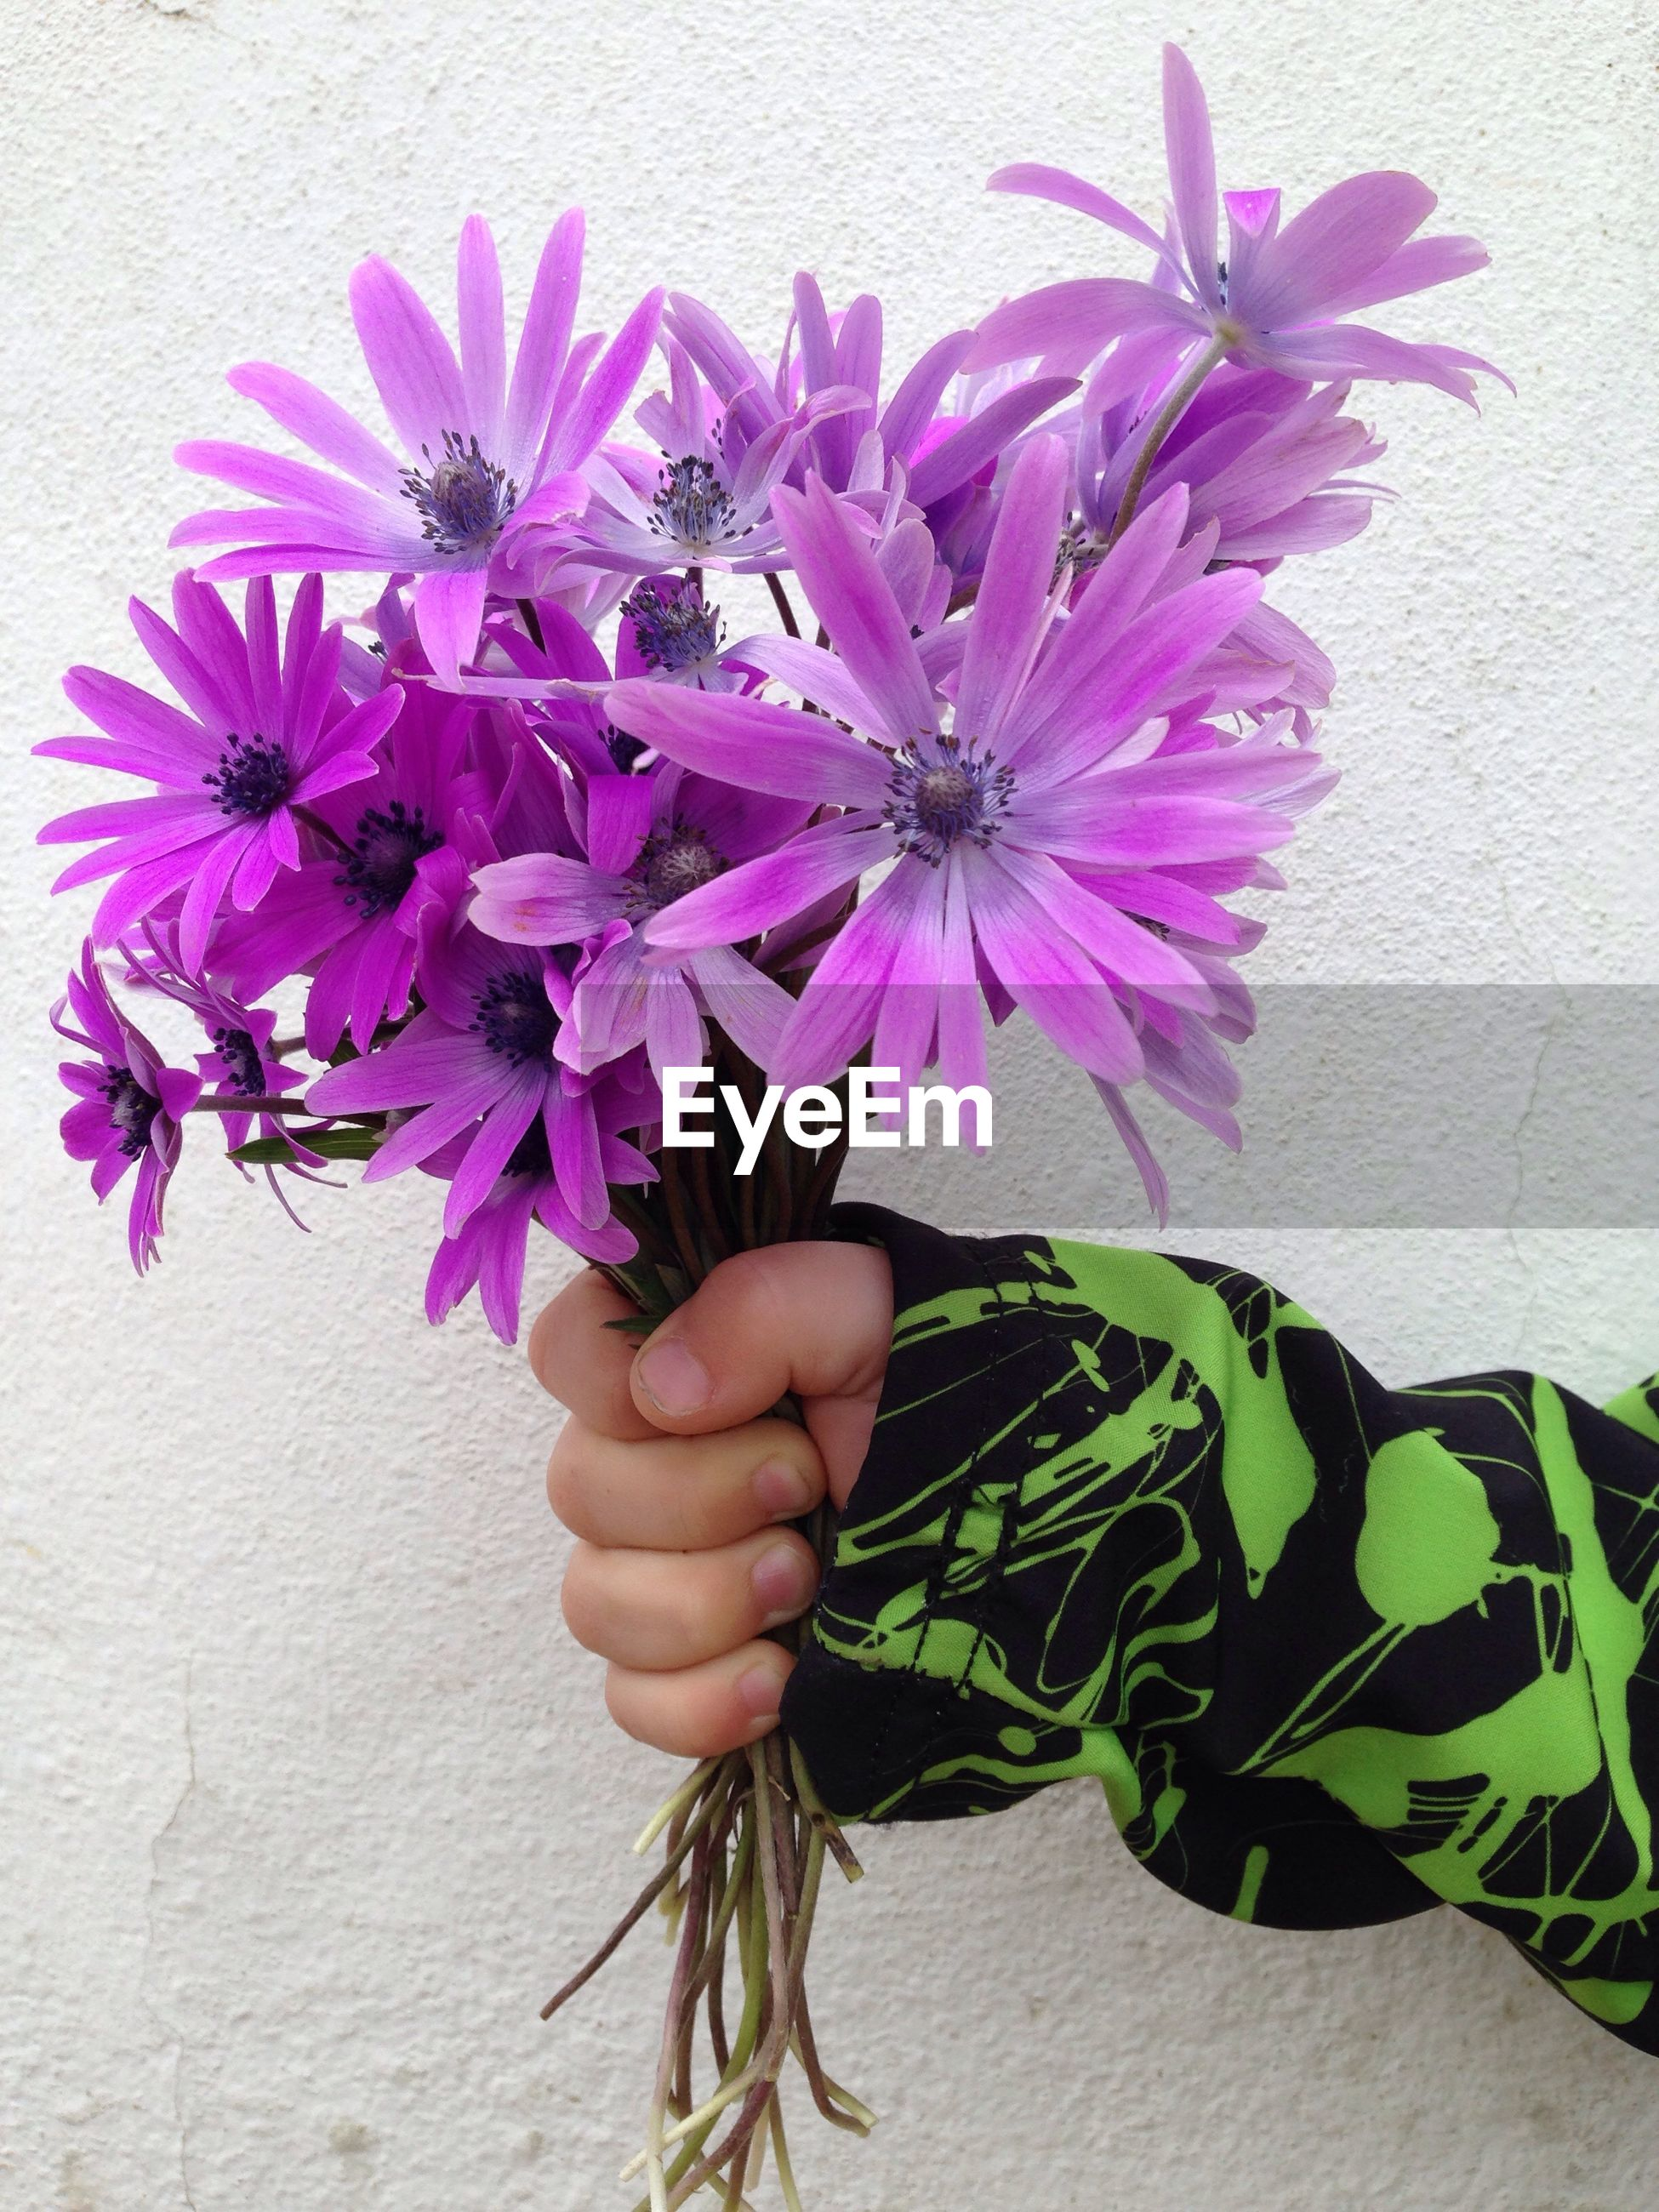 Cropped hand holding purple flowers by white wall